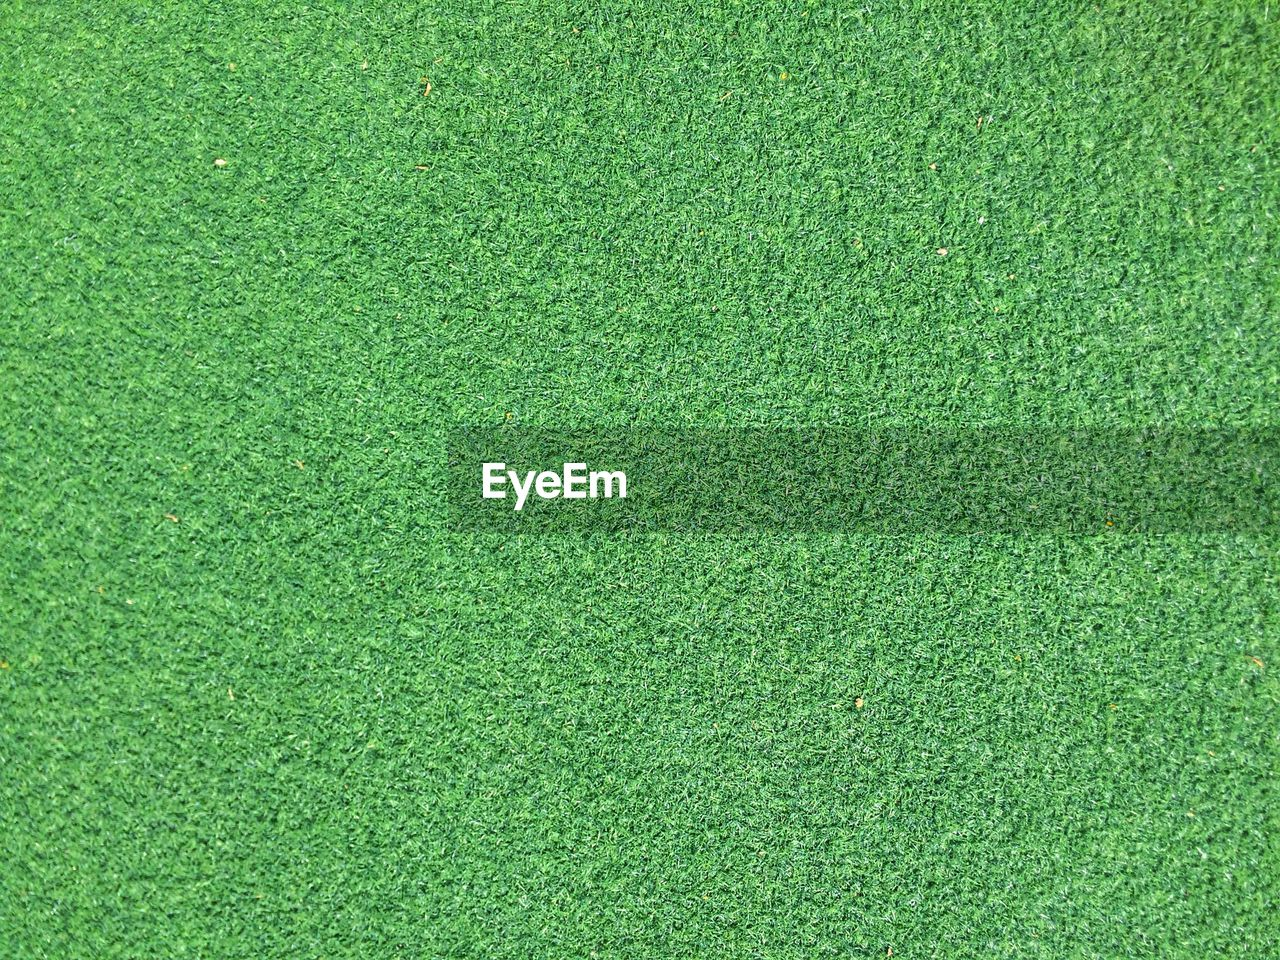 green color, backgrounds, grass, sport, textured, full frame, no people, lawn, playing field, copy space, blank, close-up, textured effect, plant, empty, pattern, directly above, golf, environment, carpet - decor, clean, green background, turf